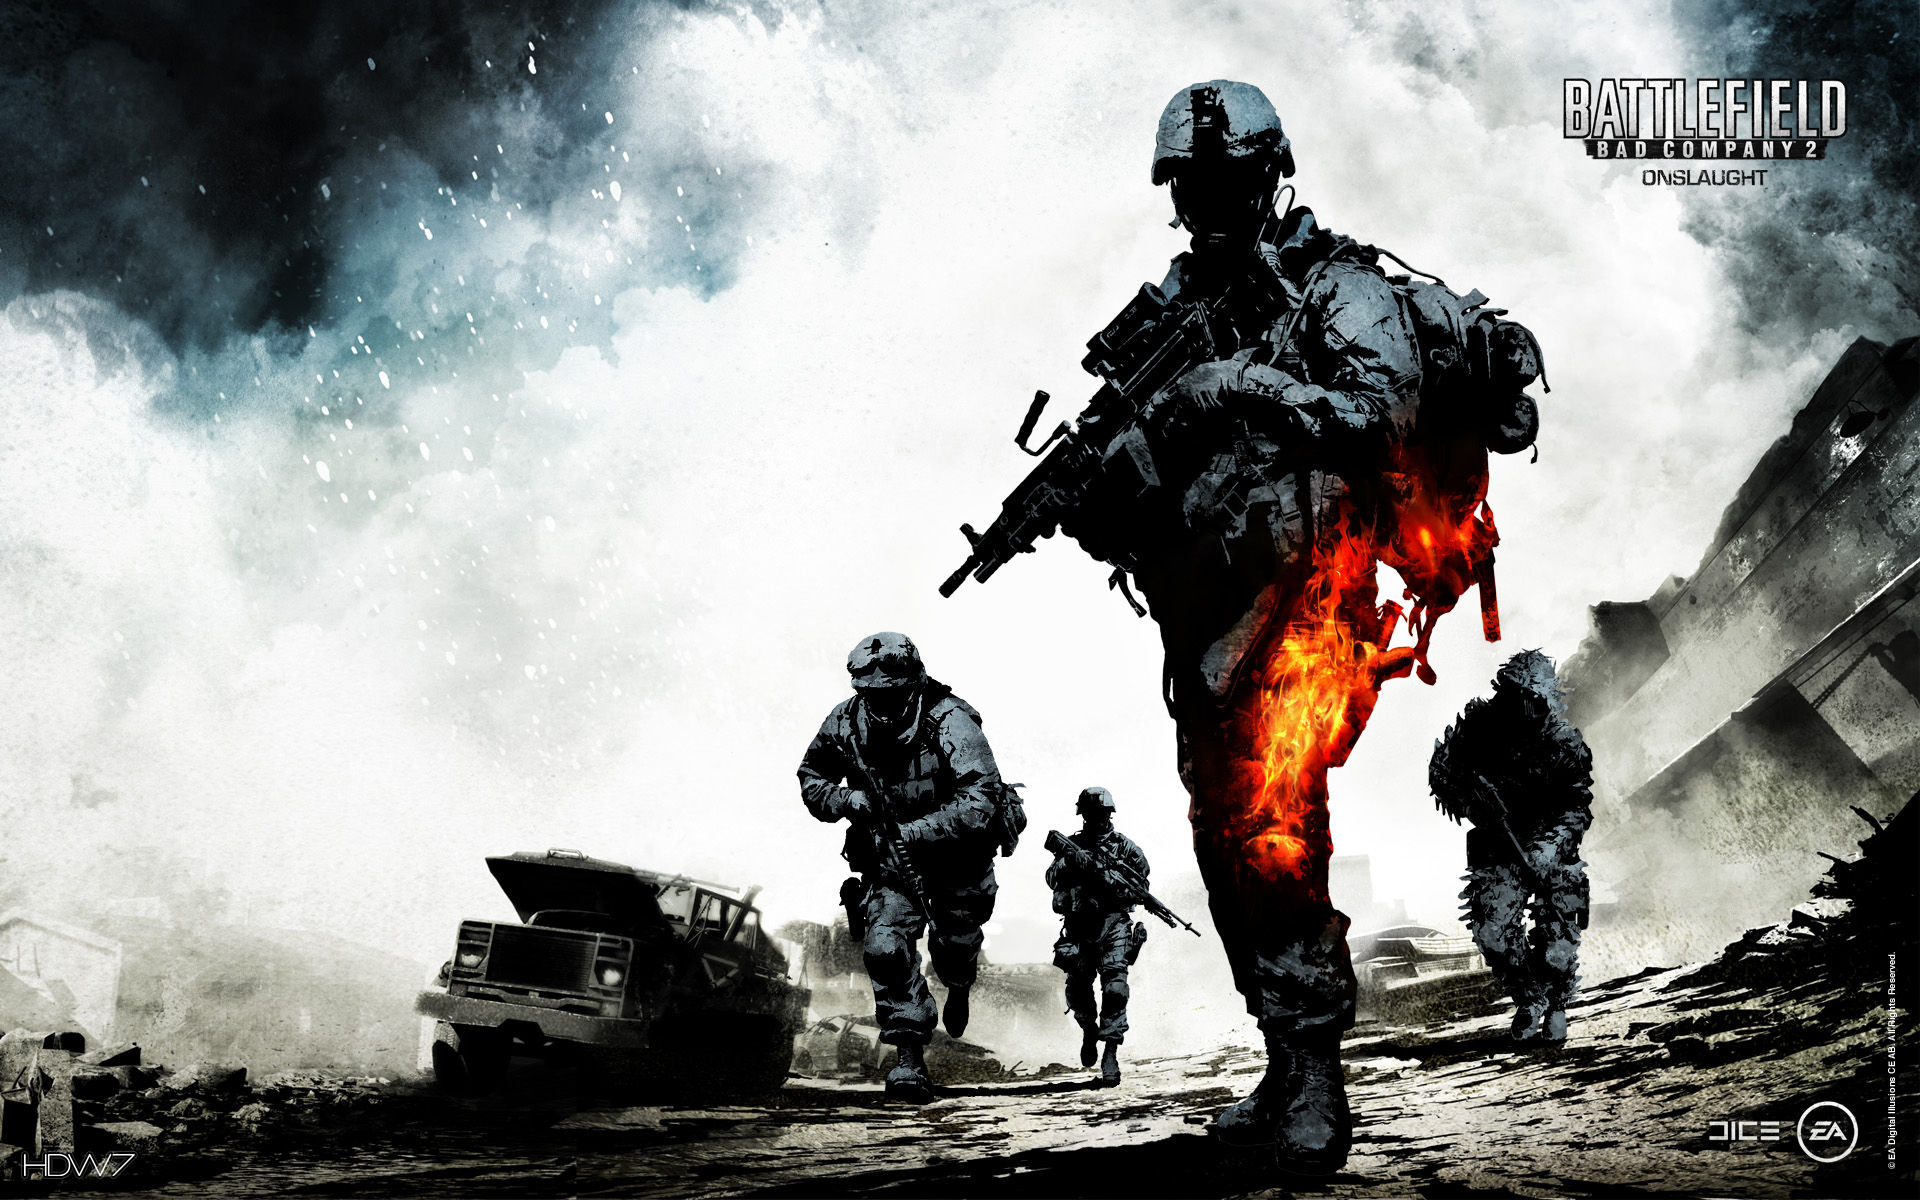 battlefield bad company 2 wallpaper 1920x1200